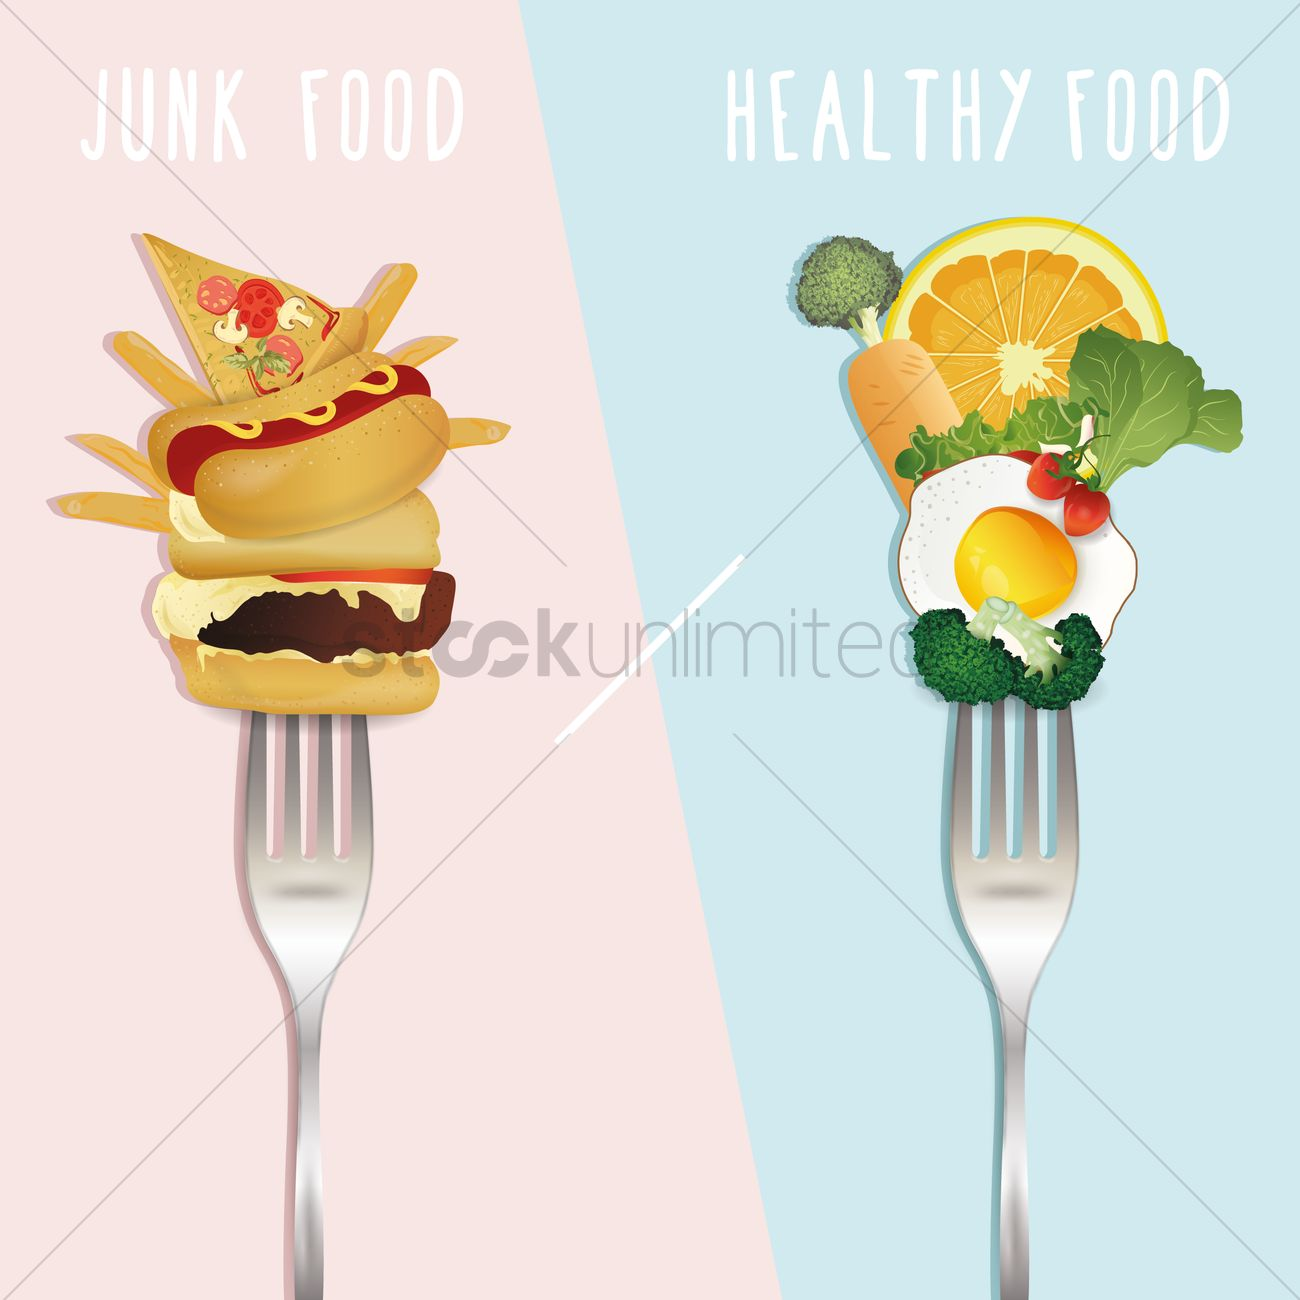 junk food vs healthy food A high price for healthy food by tara parker-pope but the contrast between 2,000 calories of nutritious foods vs junk food was interesting i thought.